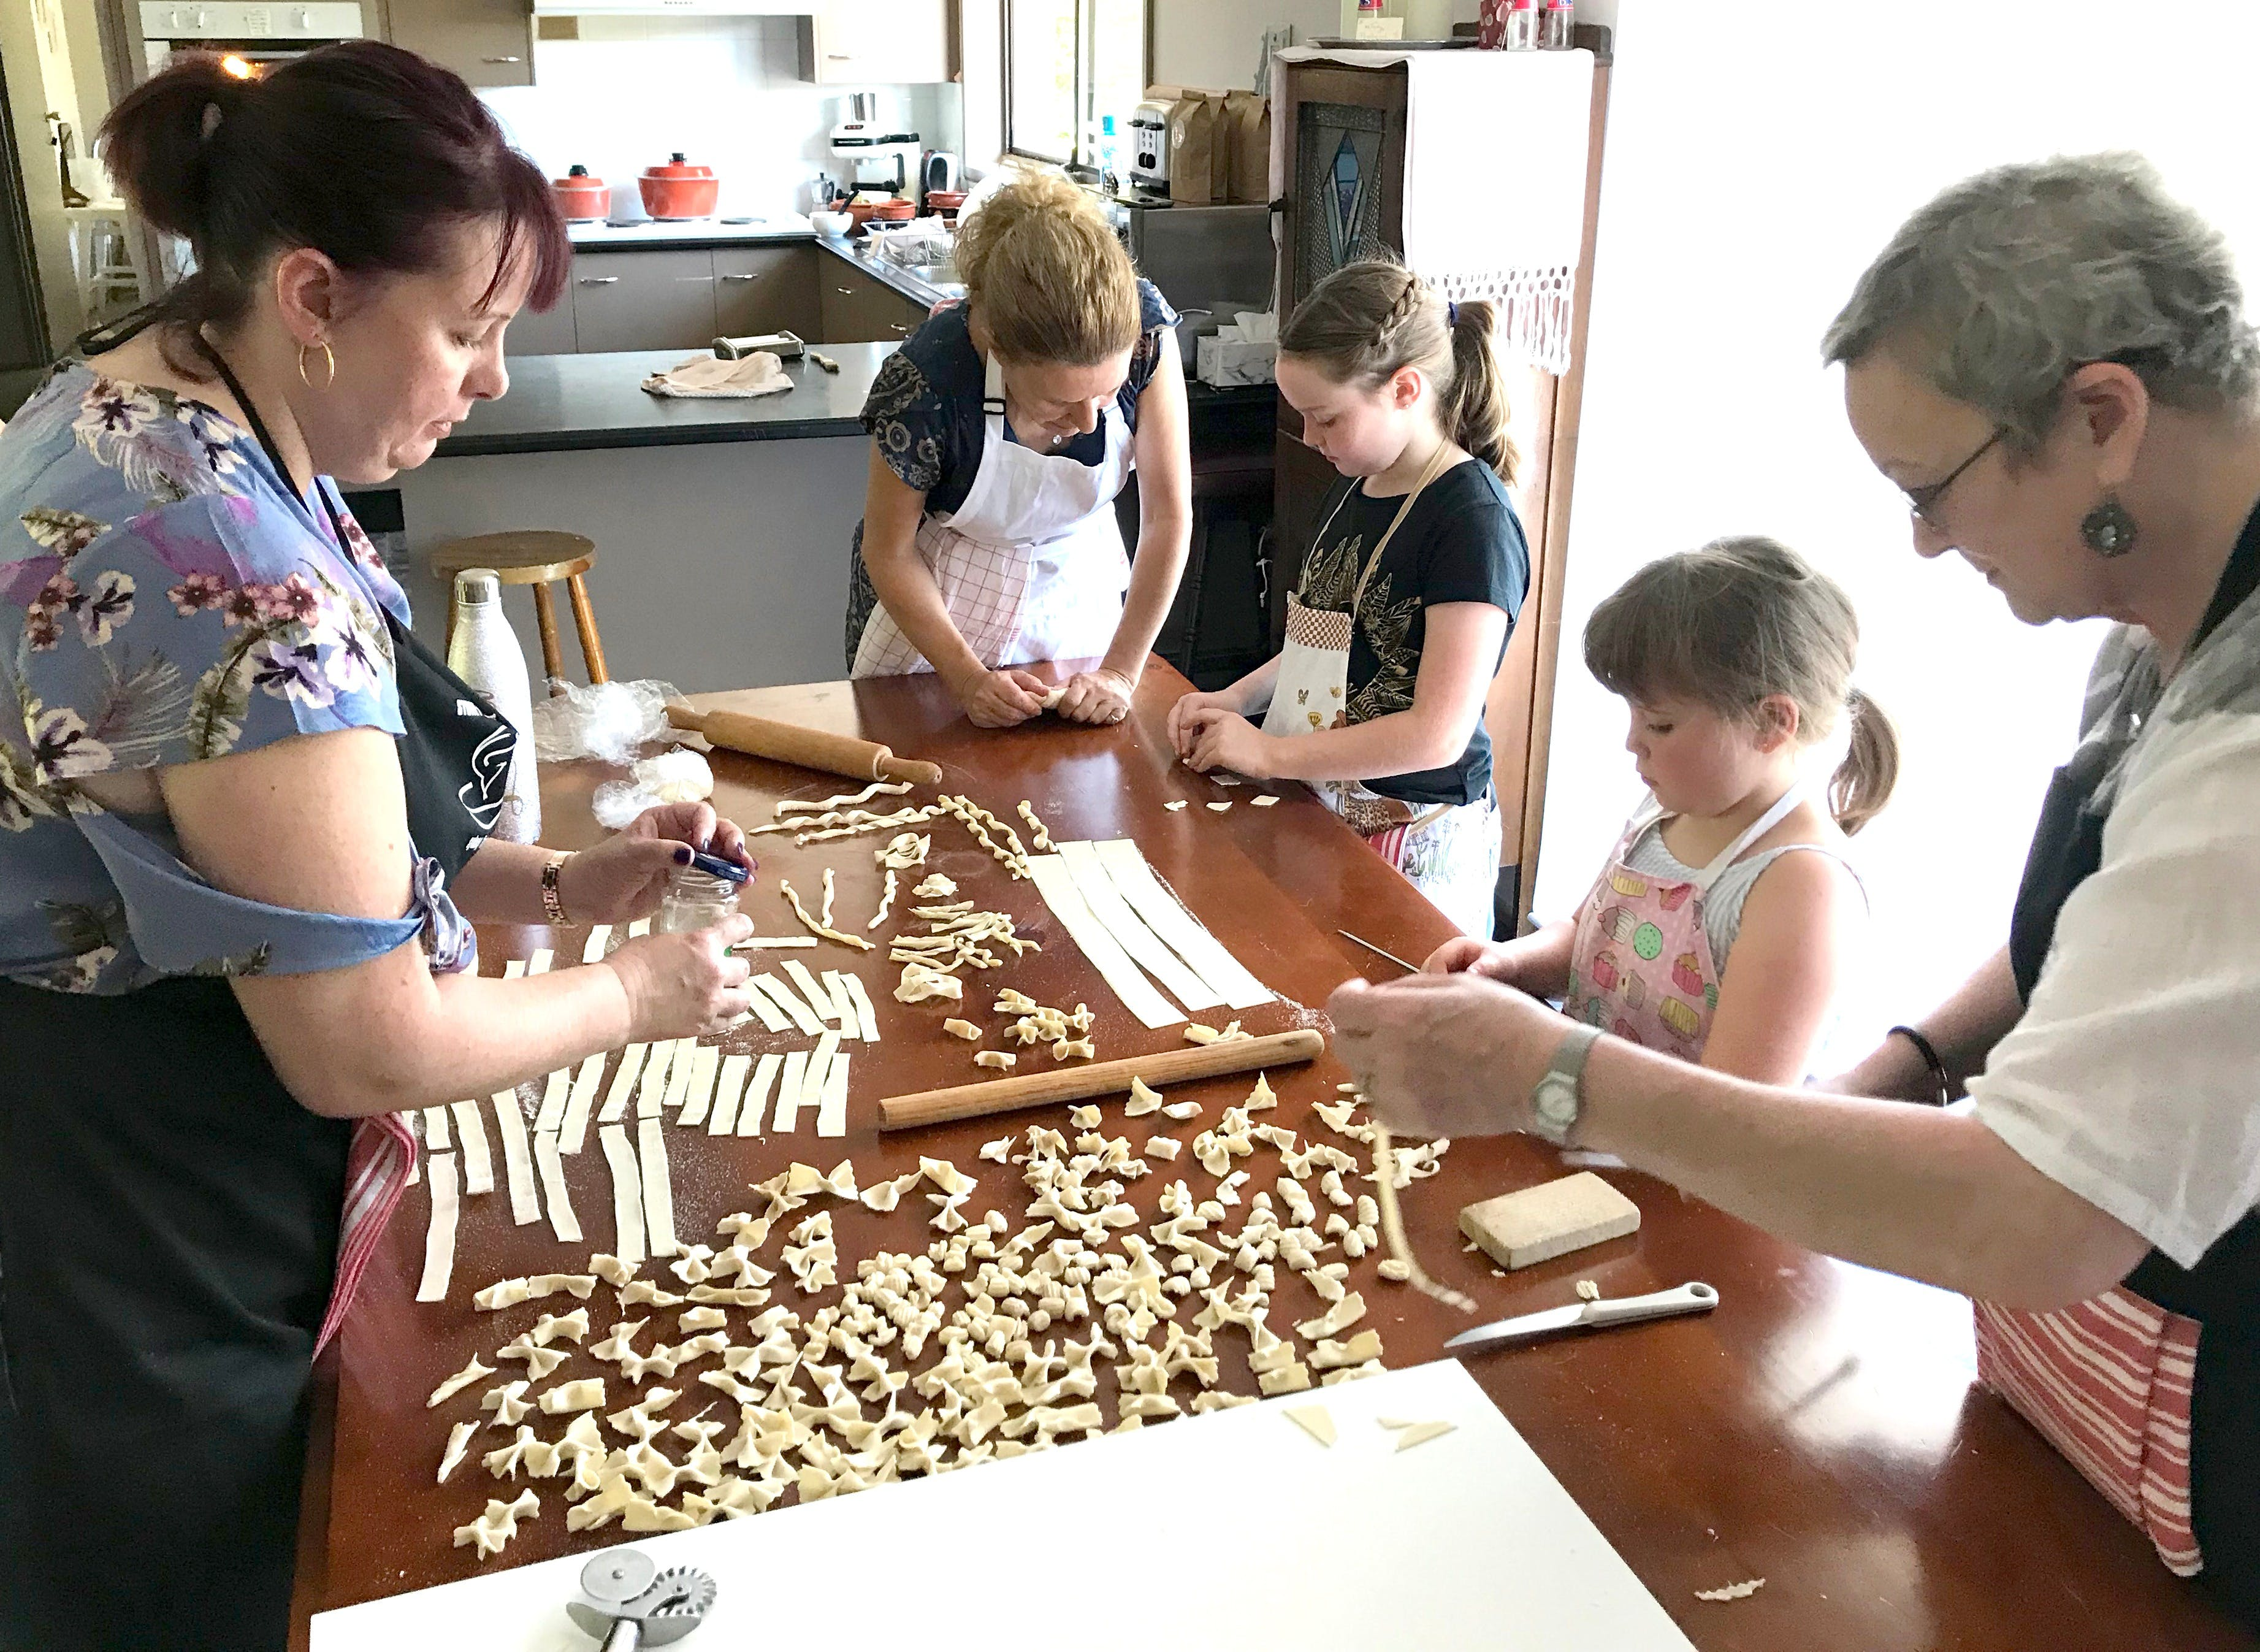 Kids Pasta Making Class - hands on fun at your house - QLD Tourism